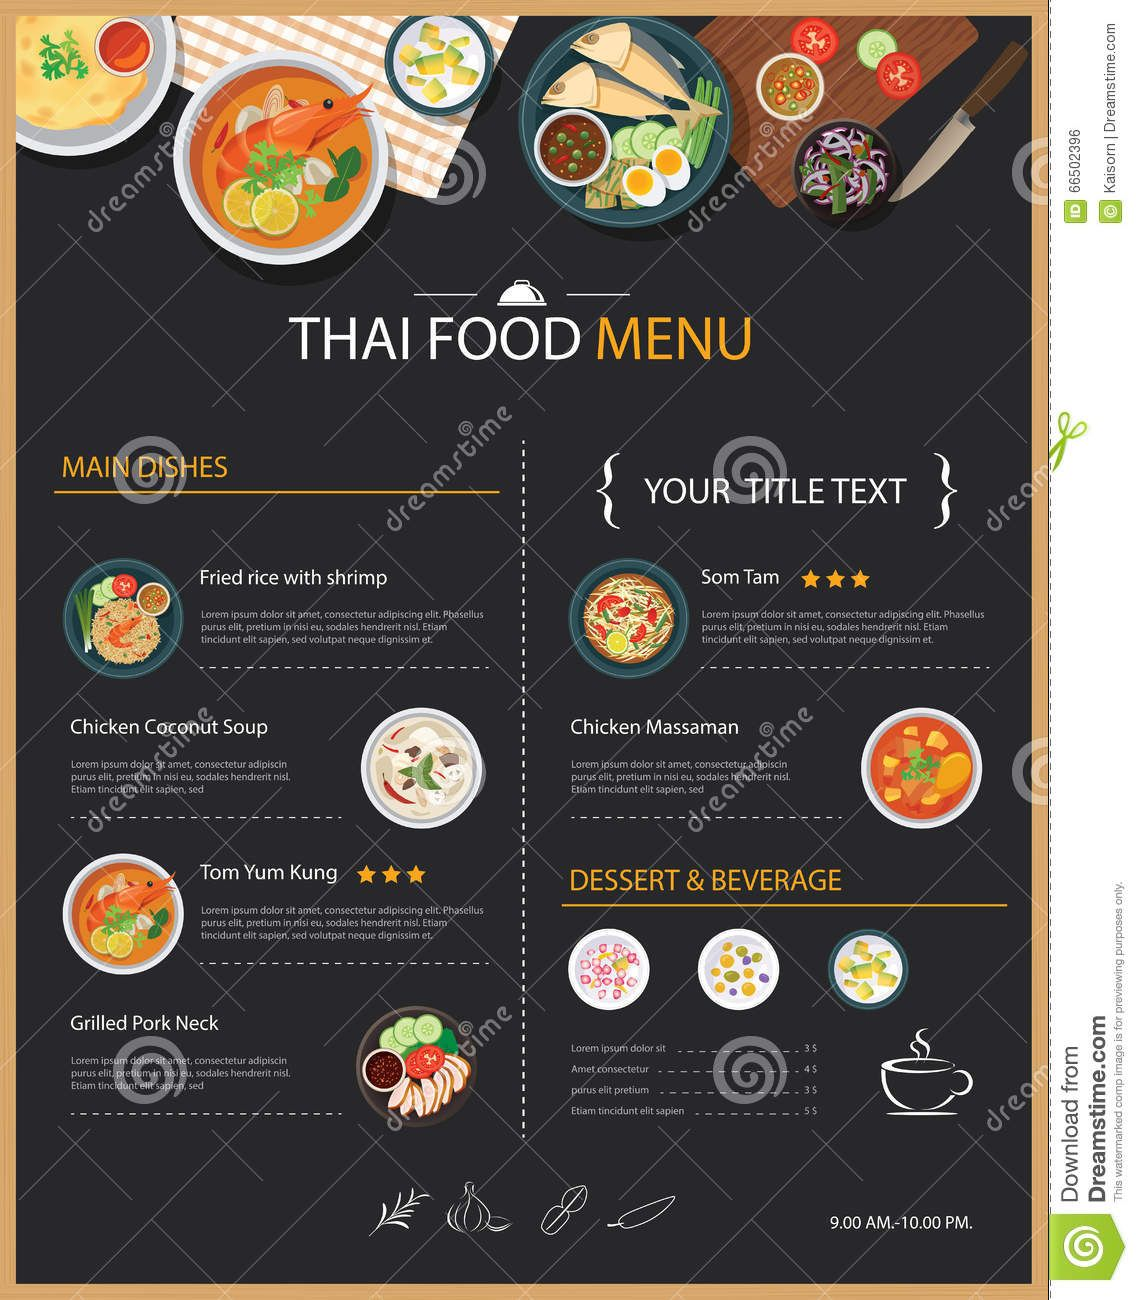 Thai Food Restaurant Menu Template Flat Design Download From